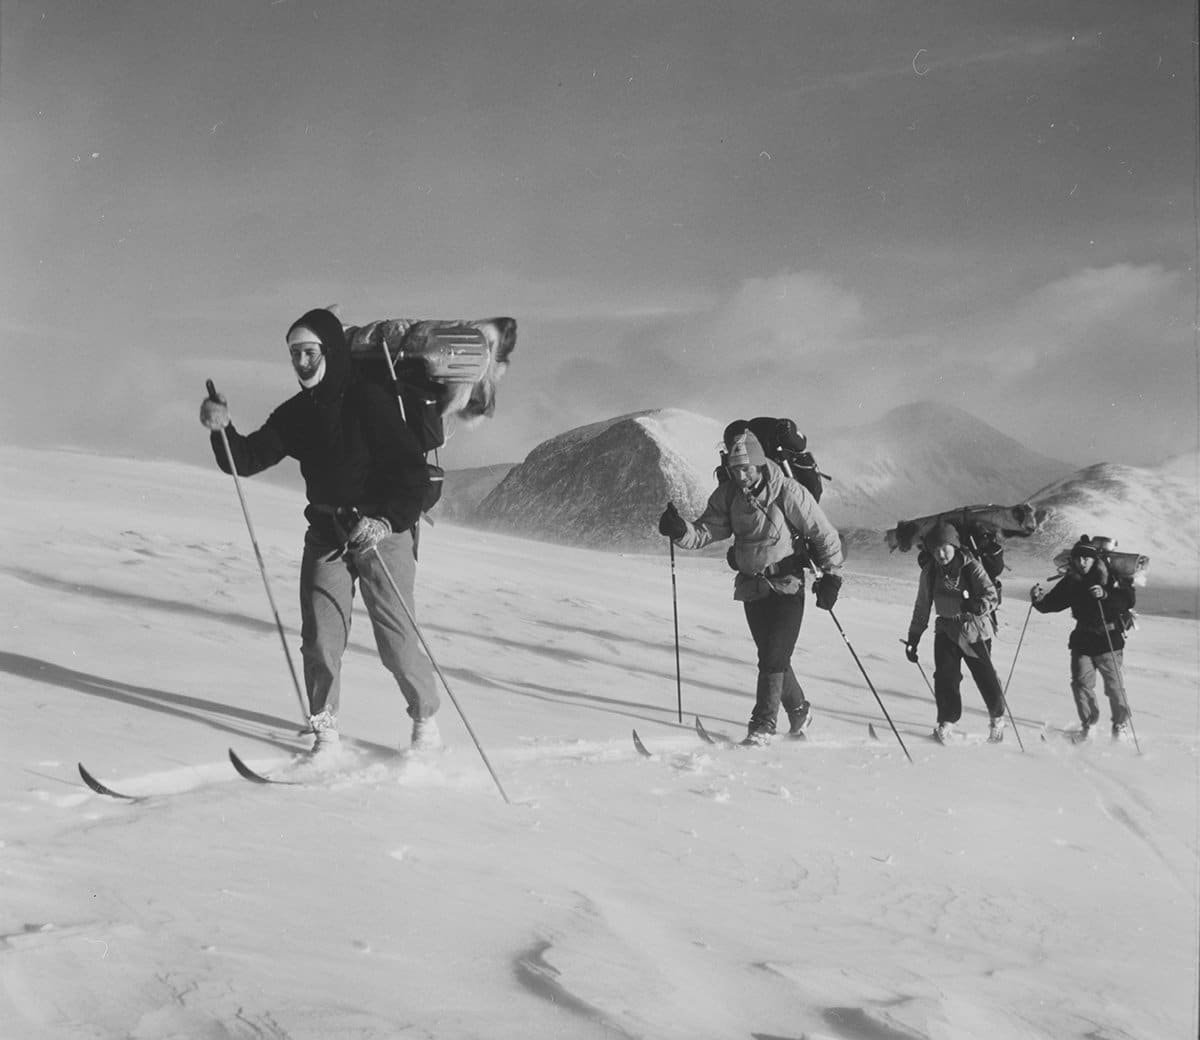 Skiing in Rondane in 1973. | Photo: Kristian Hilsen - Mittet & Co. AS nb.no cc pdm.